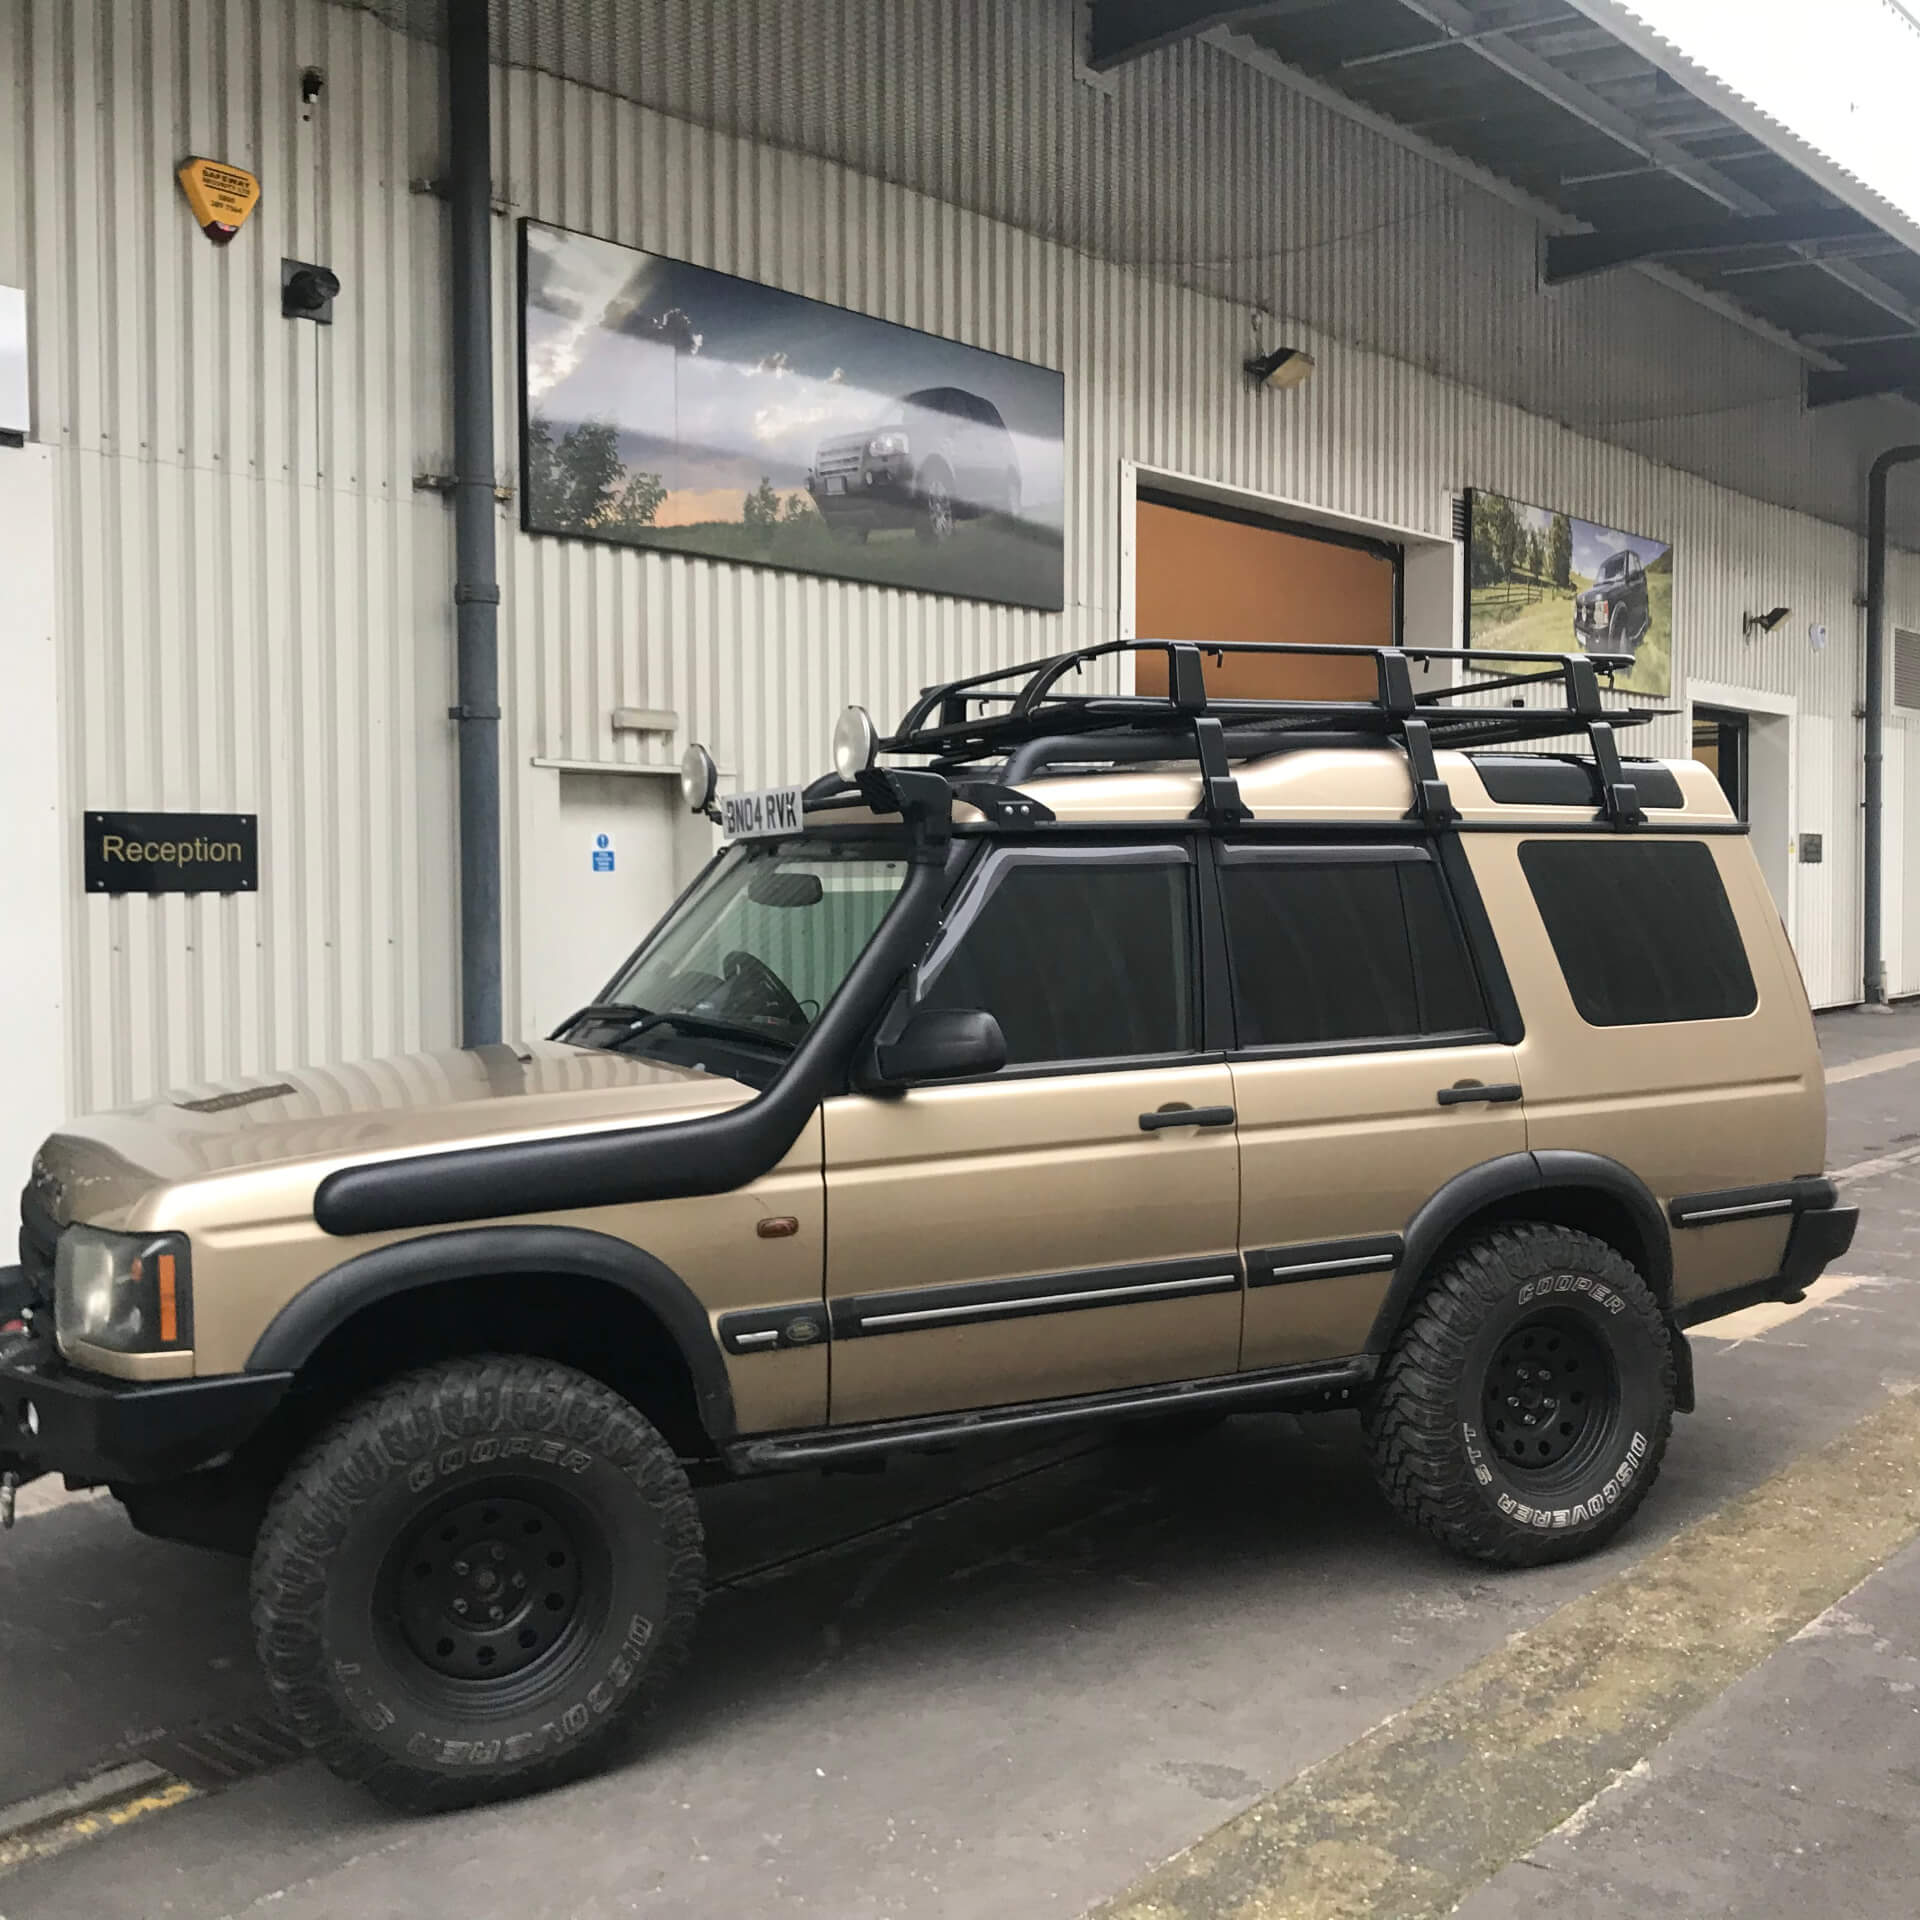 Direct4x4 Land Rover Discovery expedition roof rack system